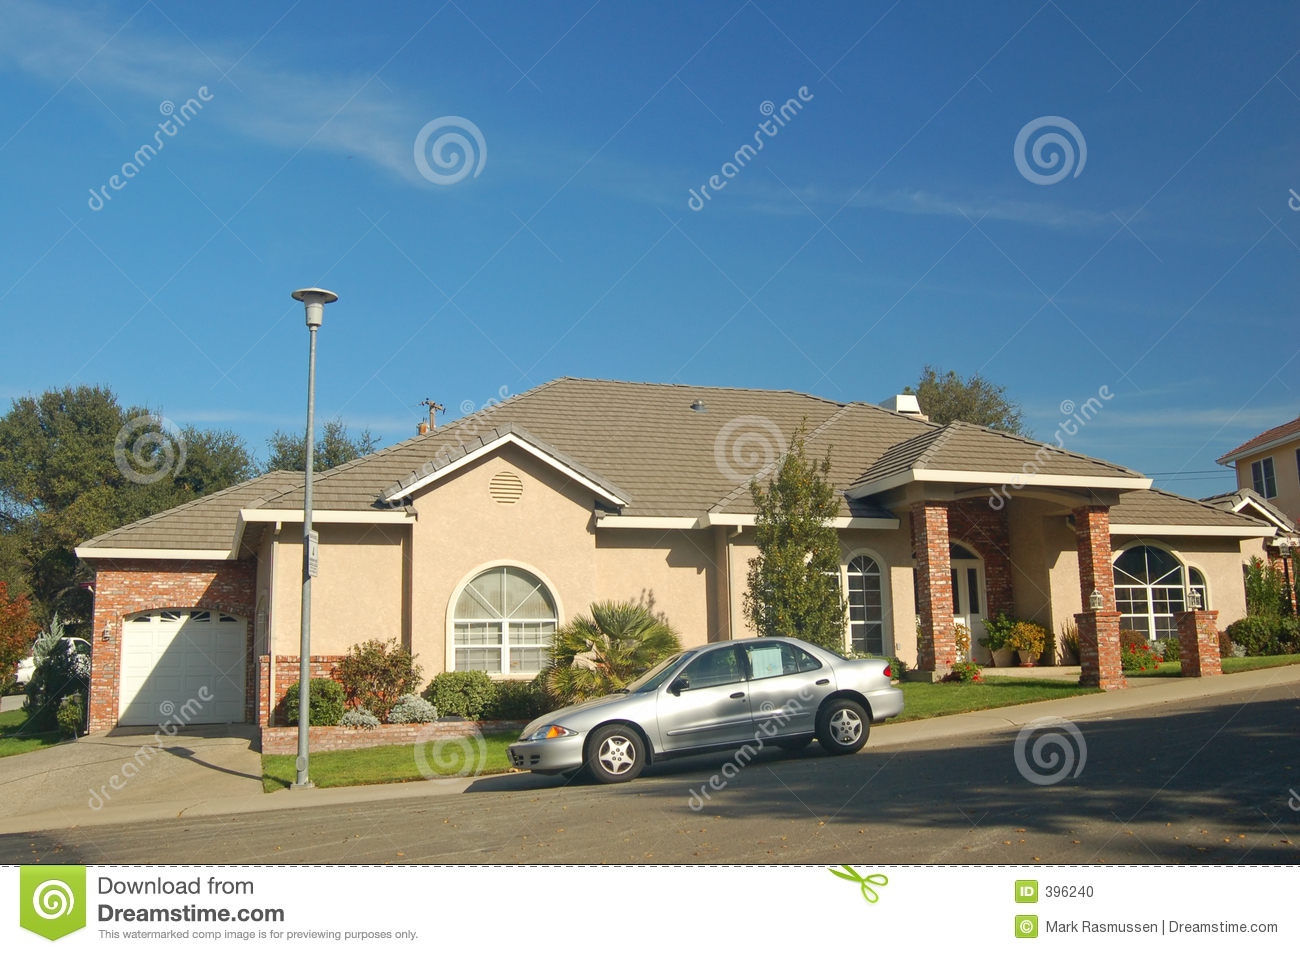 Nice house in the suburbs stock photo image of living for Nice house photo